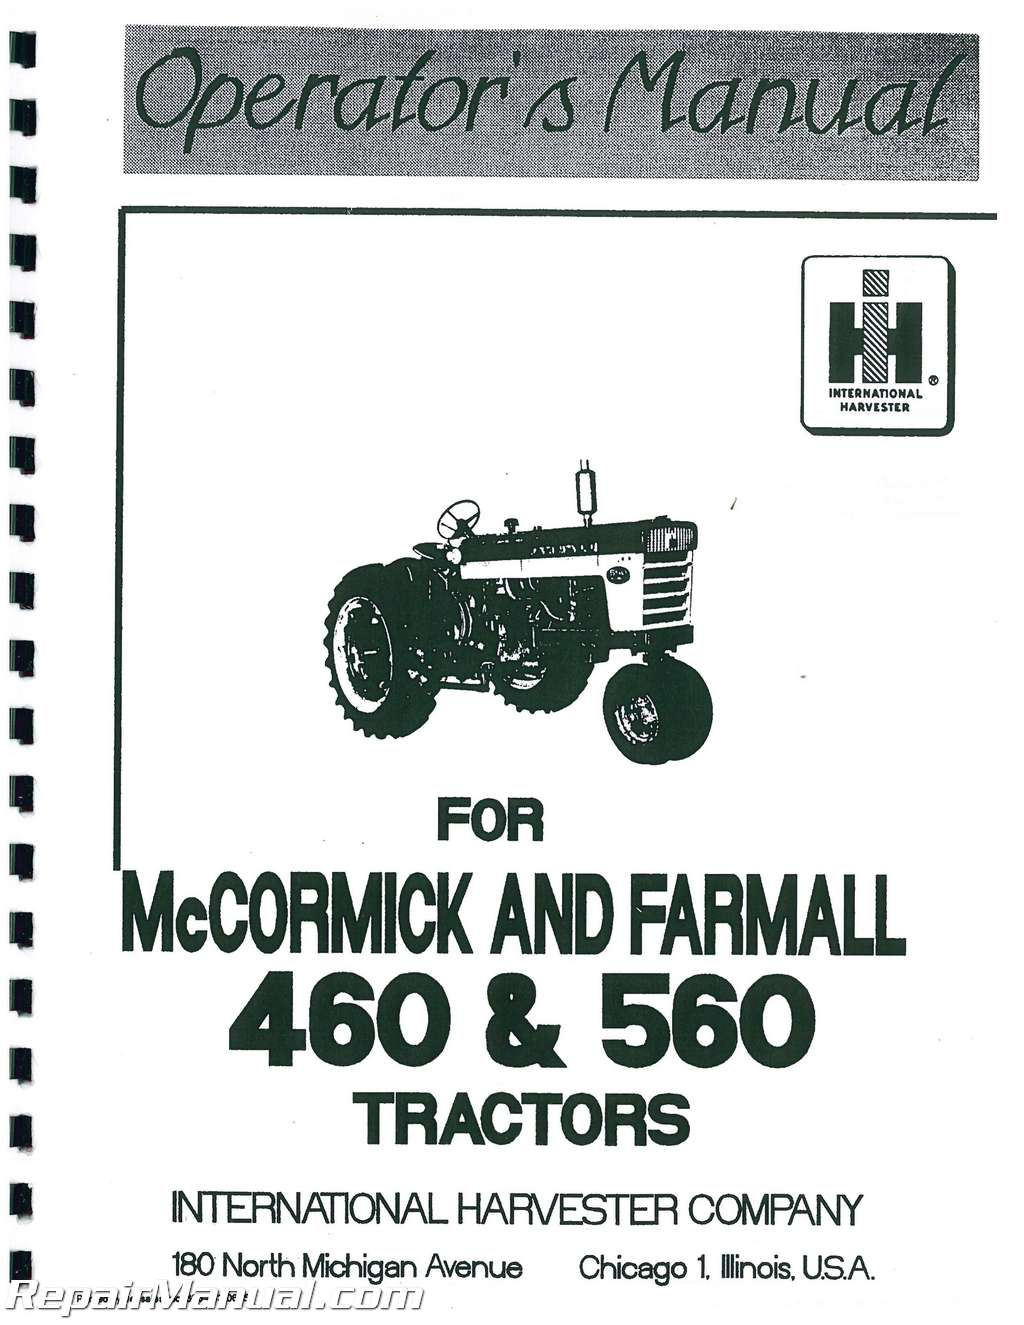 rc gas snowmobile with International Harvester Farmall 460 560 Factory Operators Manual Js Ih O 460 560 on 191632904169 furthermore Model Airplane Aircraft Plans Rc Gas Free Flight Ducted Fan Airplanes Huge Set further Fun additionally  also International Harvester Farmall 460 560 Factory Operators Manual Js Ih O 460 560.